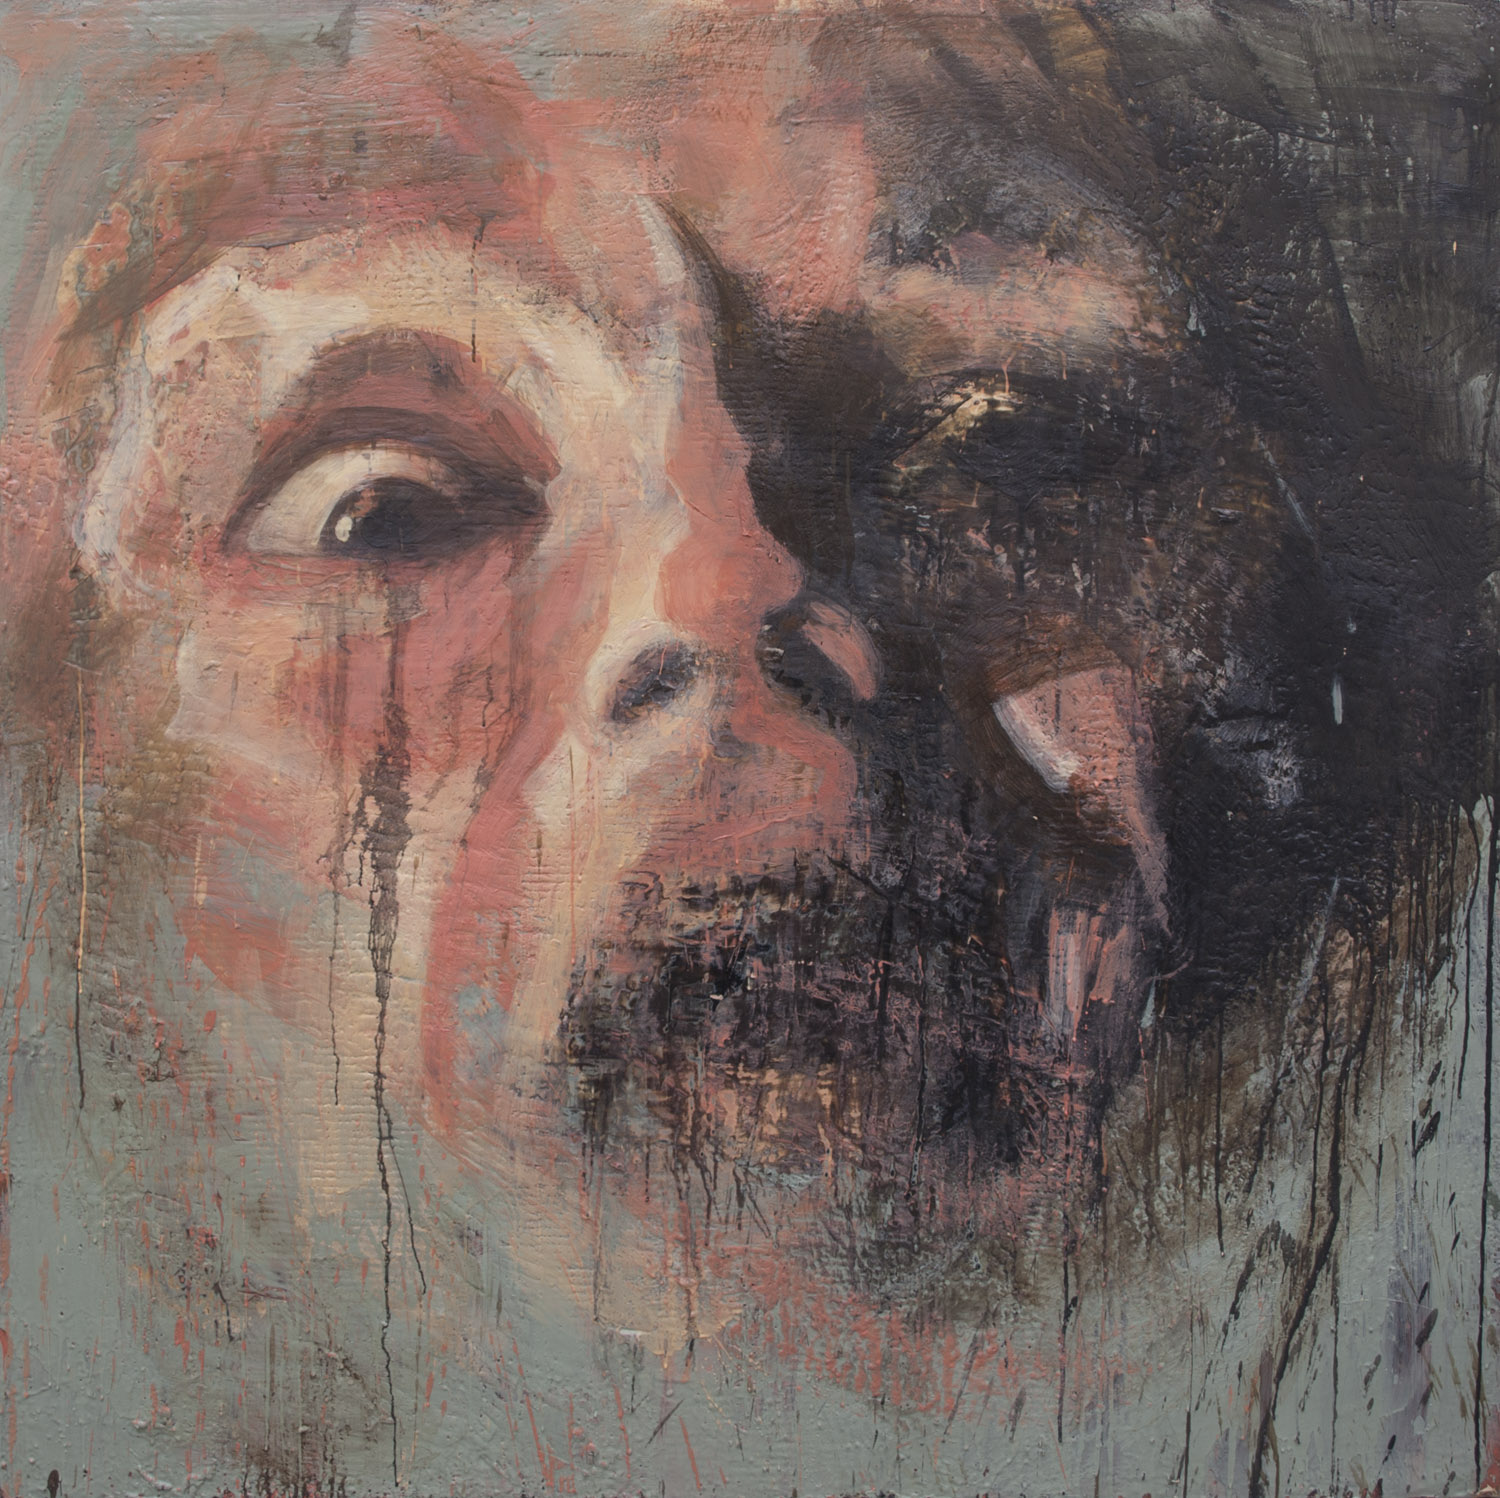 Salem: The Last Witch, 2014, encaustic on canvas, 60 x 60 inches